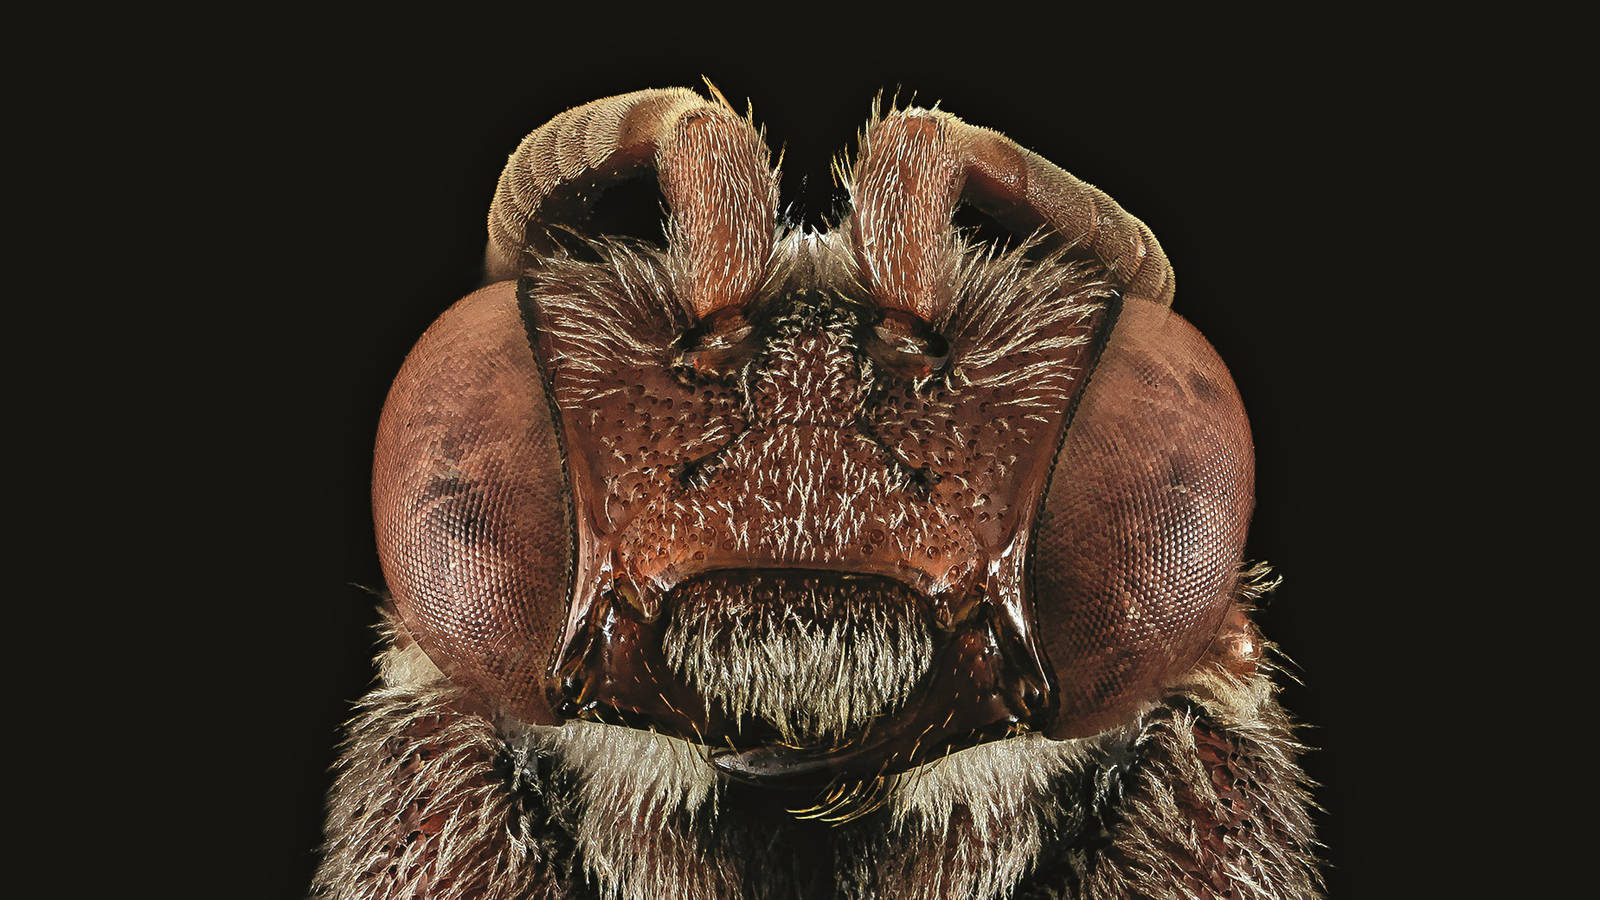 """<h3 style=""""text-align: center; padding: 50px;""""><span class=""""text-Intro-style""""><em>Nomada australis</em> (bee), Gateway National Recreation Area, New York. © BROOKE ALEXANDER/USGS BEE INVENTORY AND MONITORING LAB</span></h3>"""